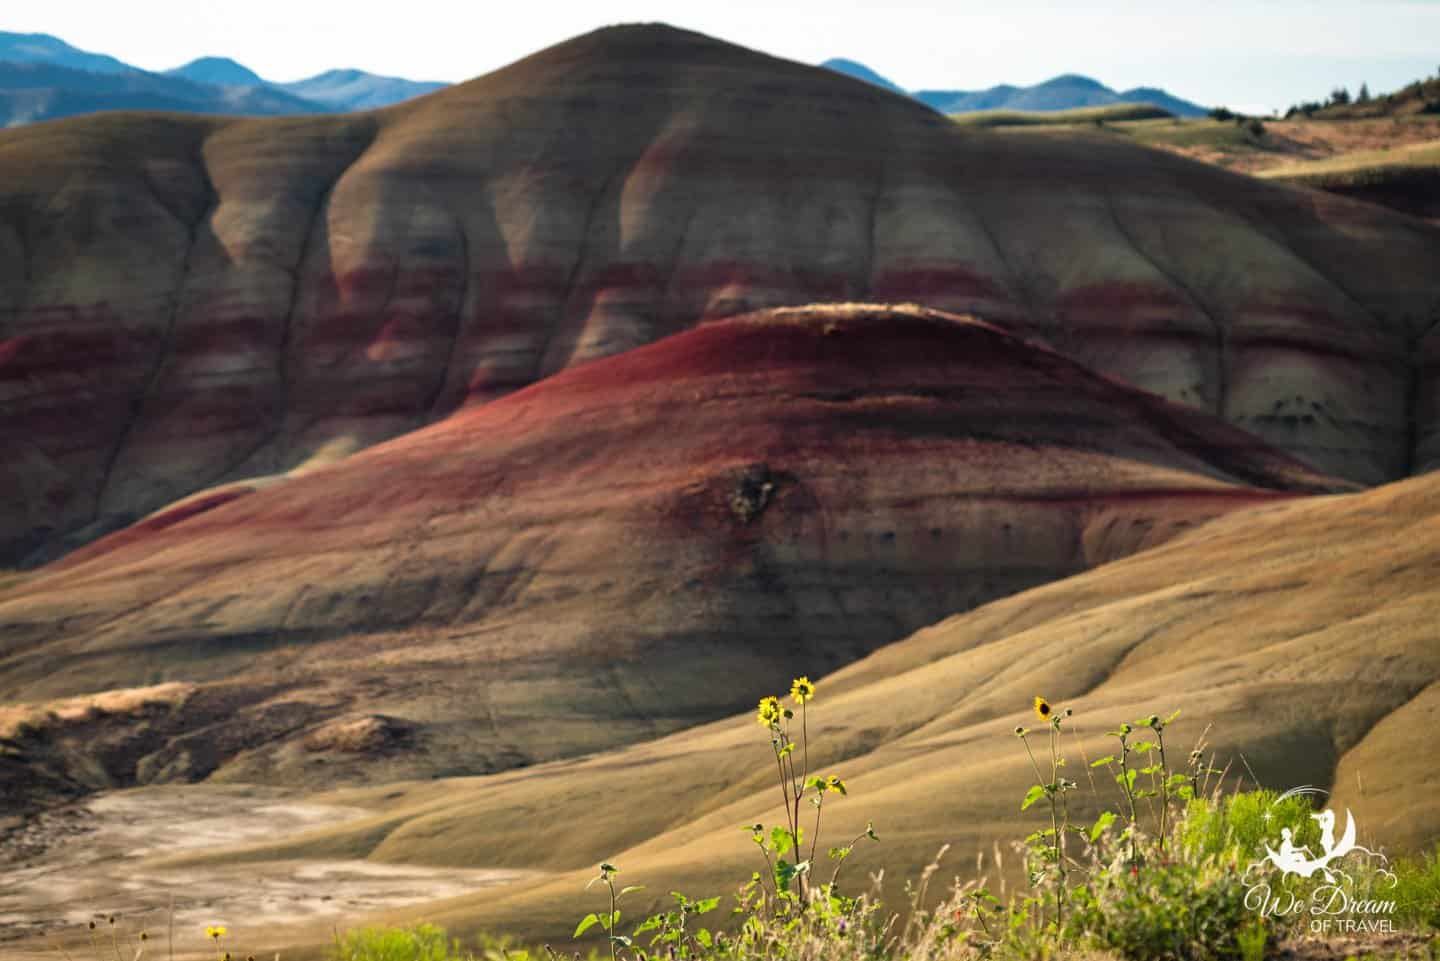 Wildflowers are a great reason to visit the Painted Hills of Oregon in the spring.